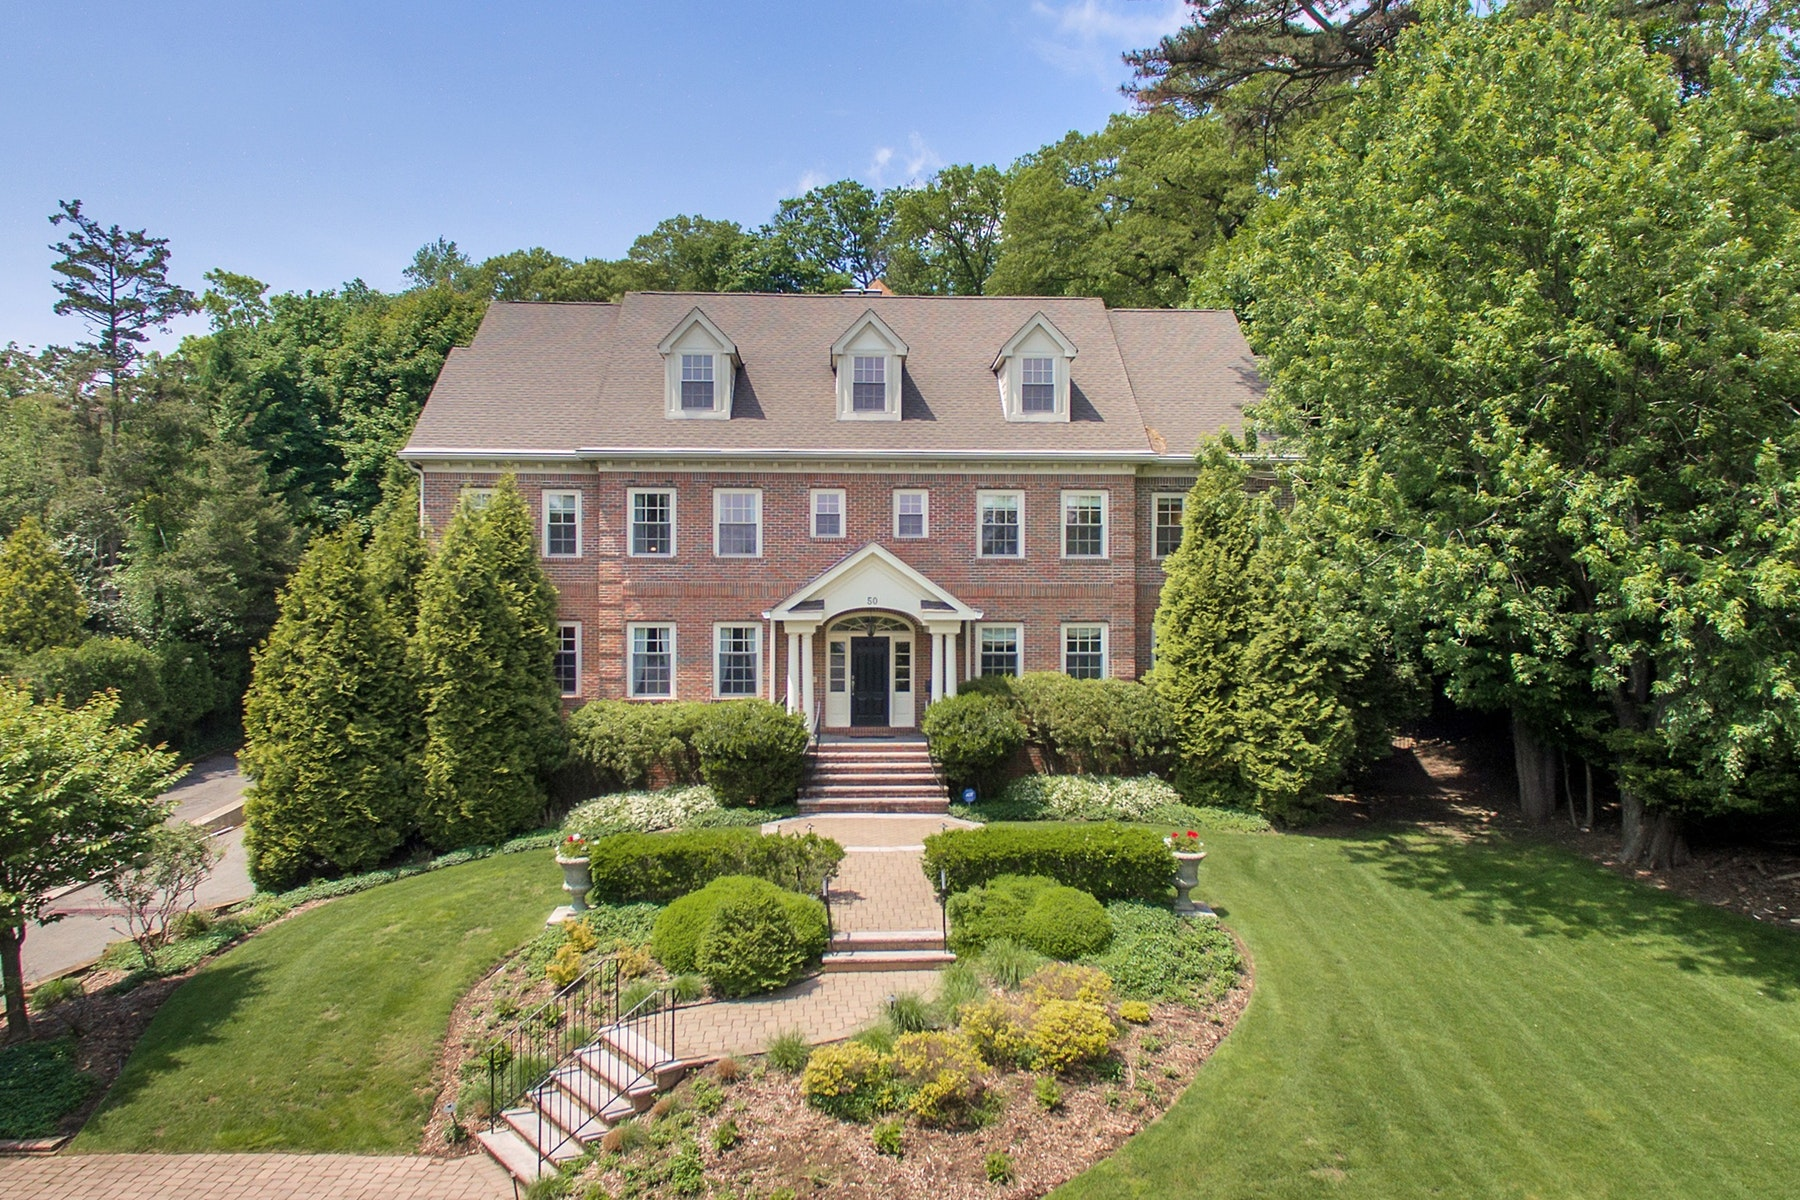 Single Family Homes for Sale at Stunning Custom Colonial 50 Highland Avenue Montclair, New Jersey 07042 United States